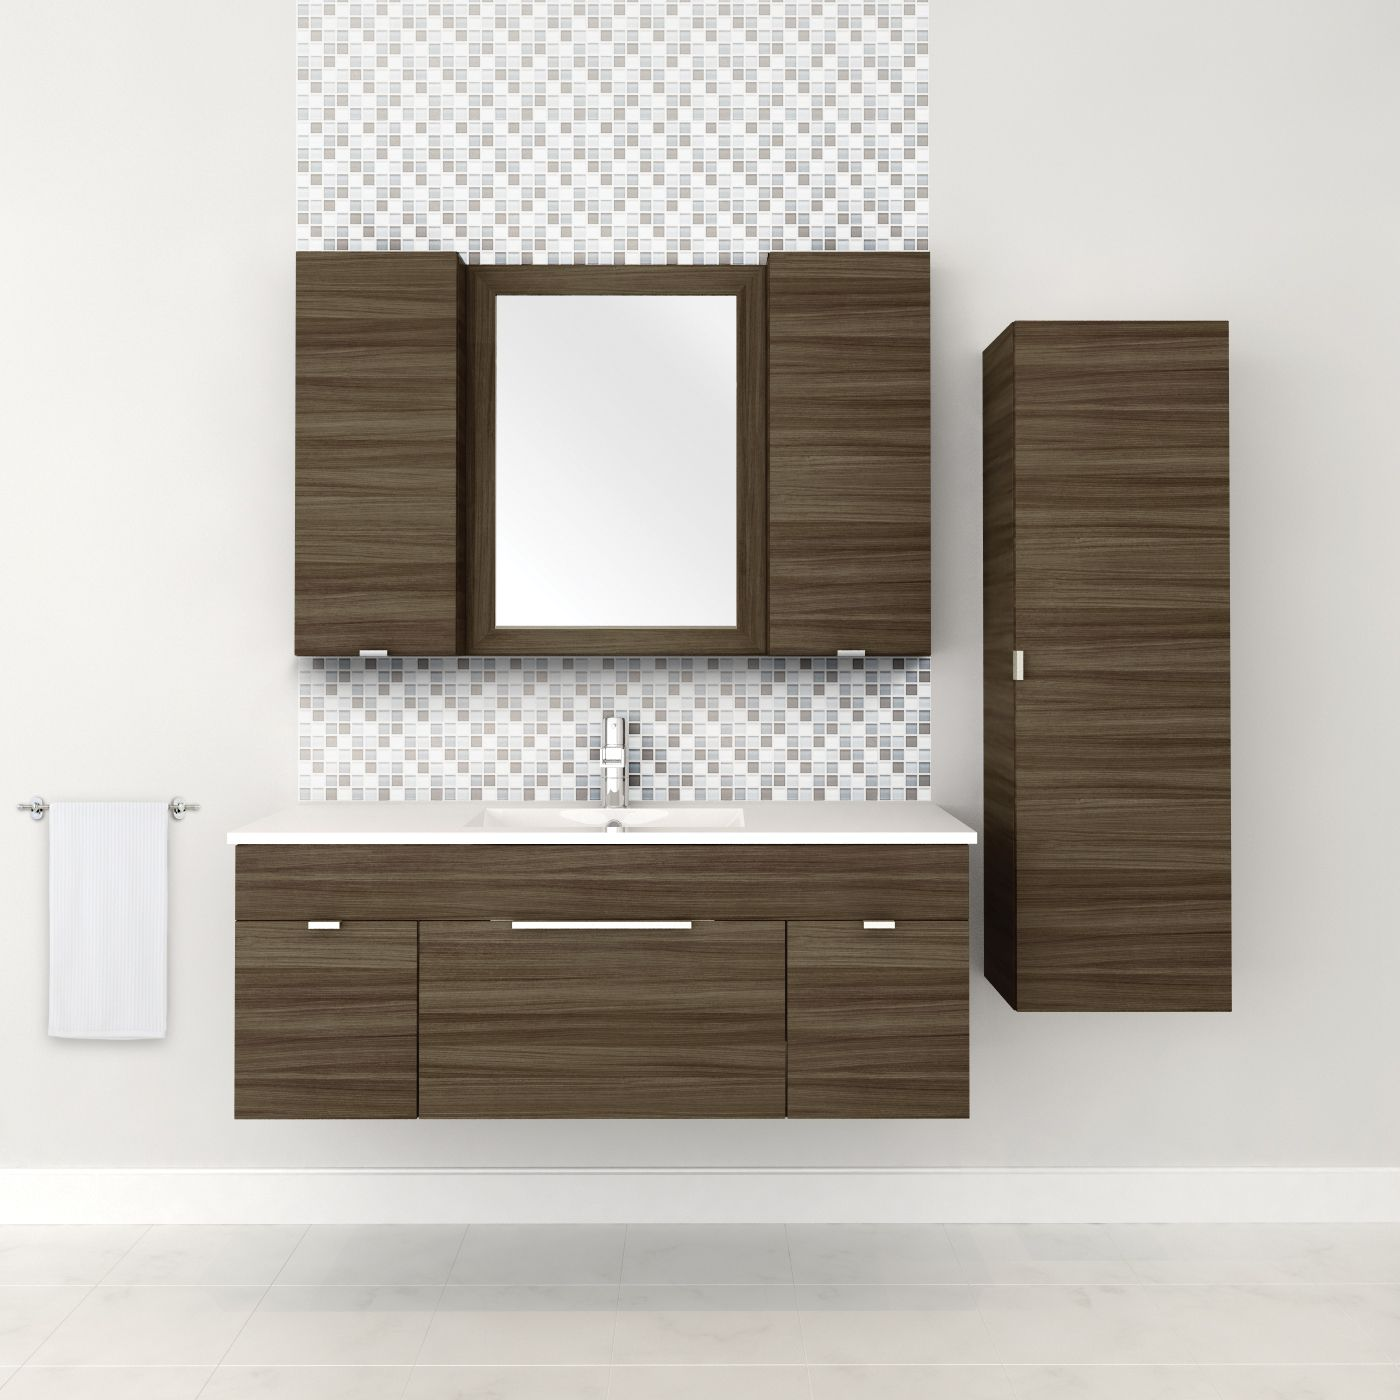 48 2 Door 1 Drawer Floating Vanity With Linen Cabinet In Driftwood Bathroom Design Homedecor Interiordesign Lightwood Lightcabinets